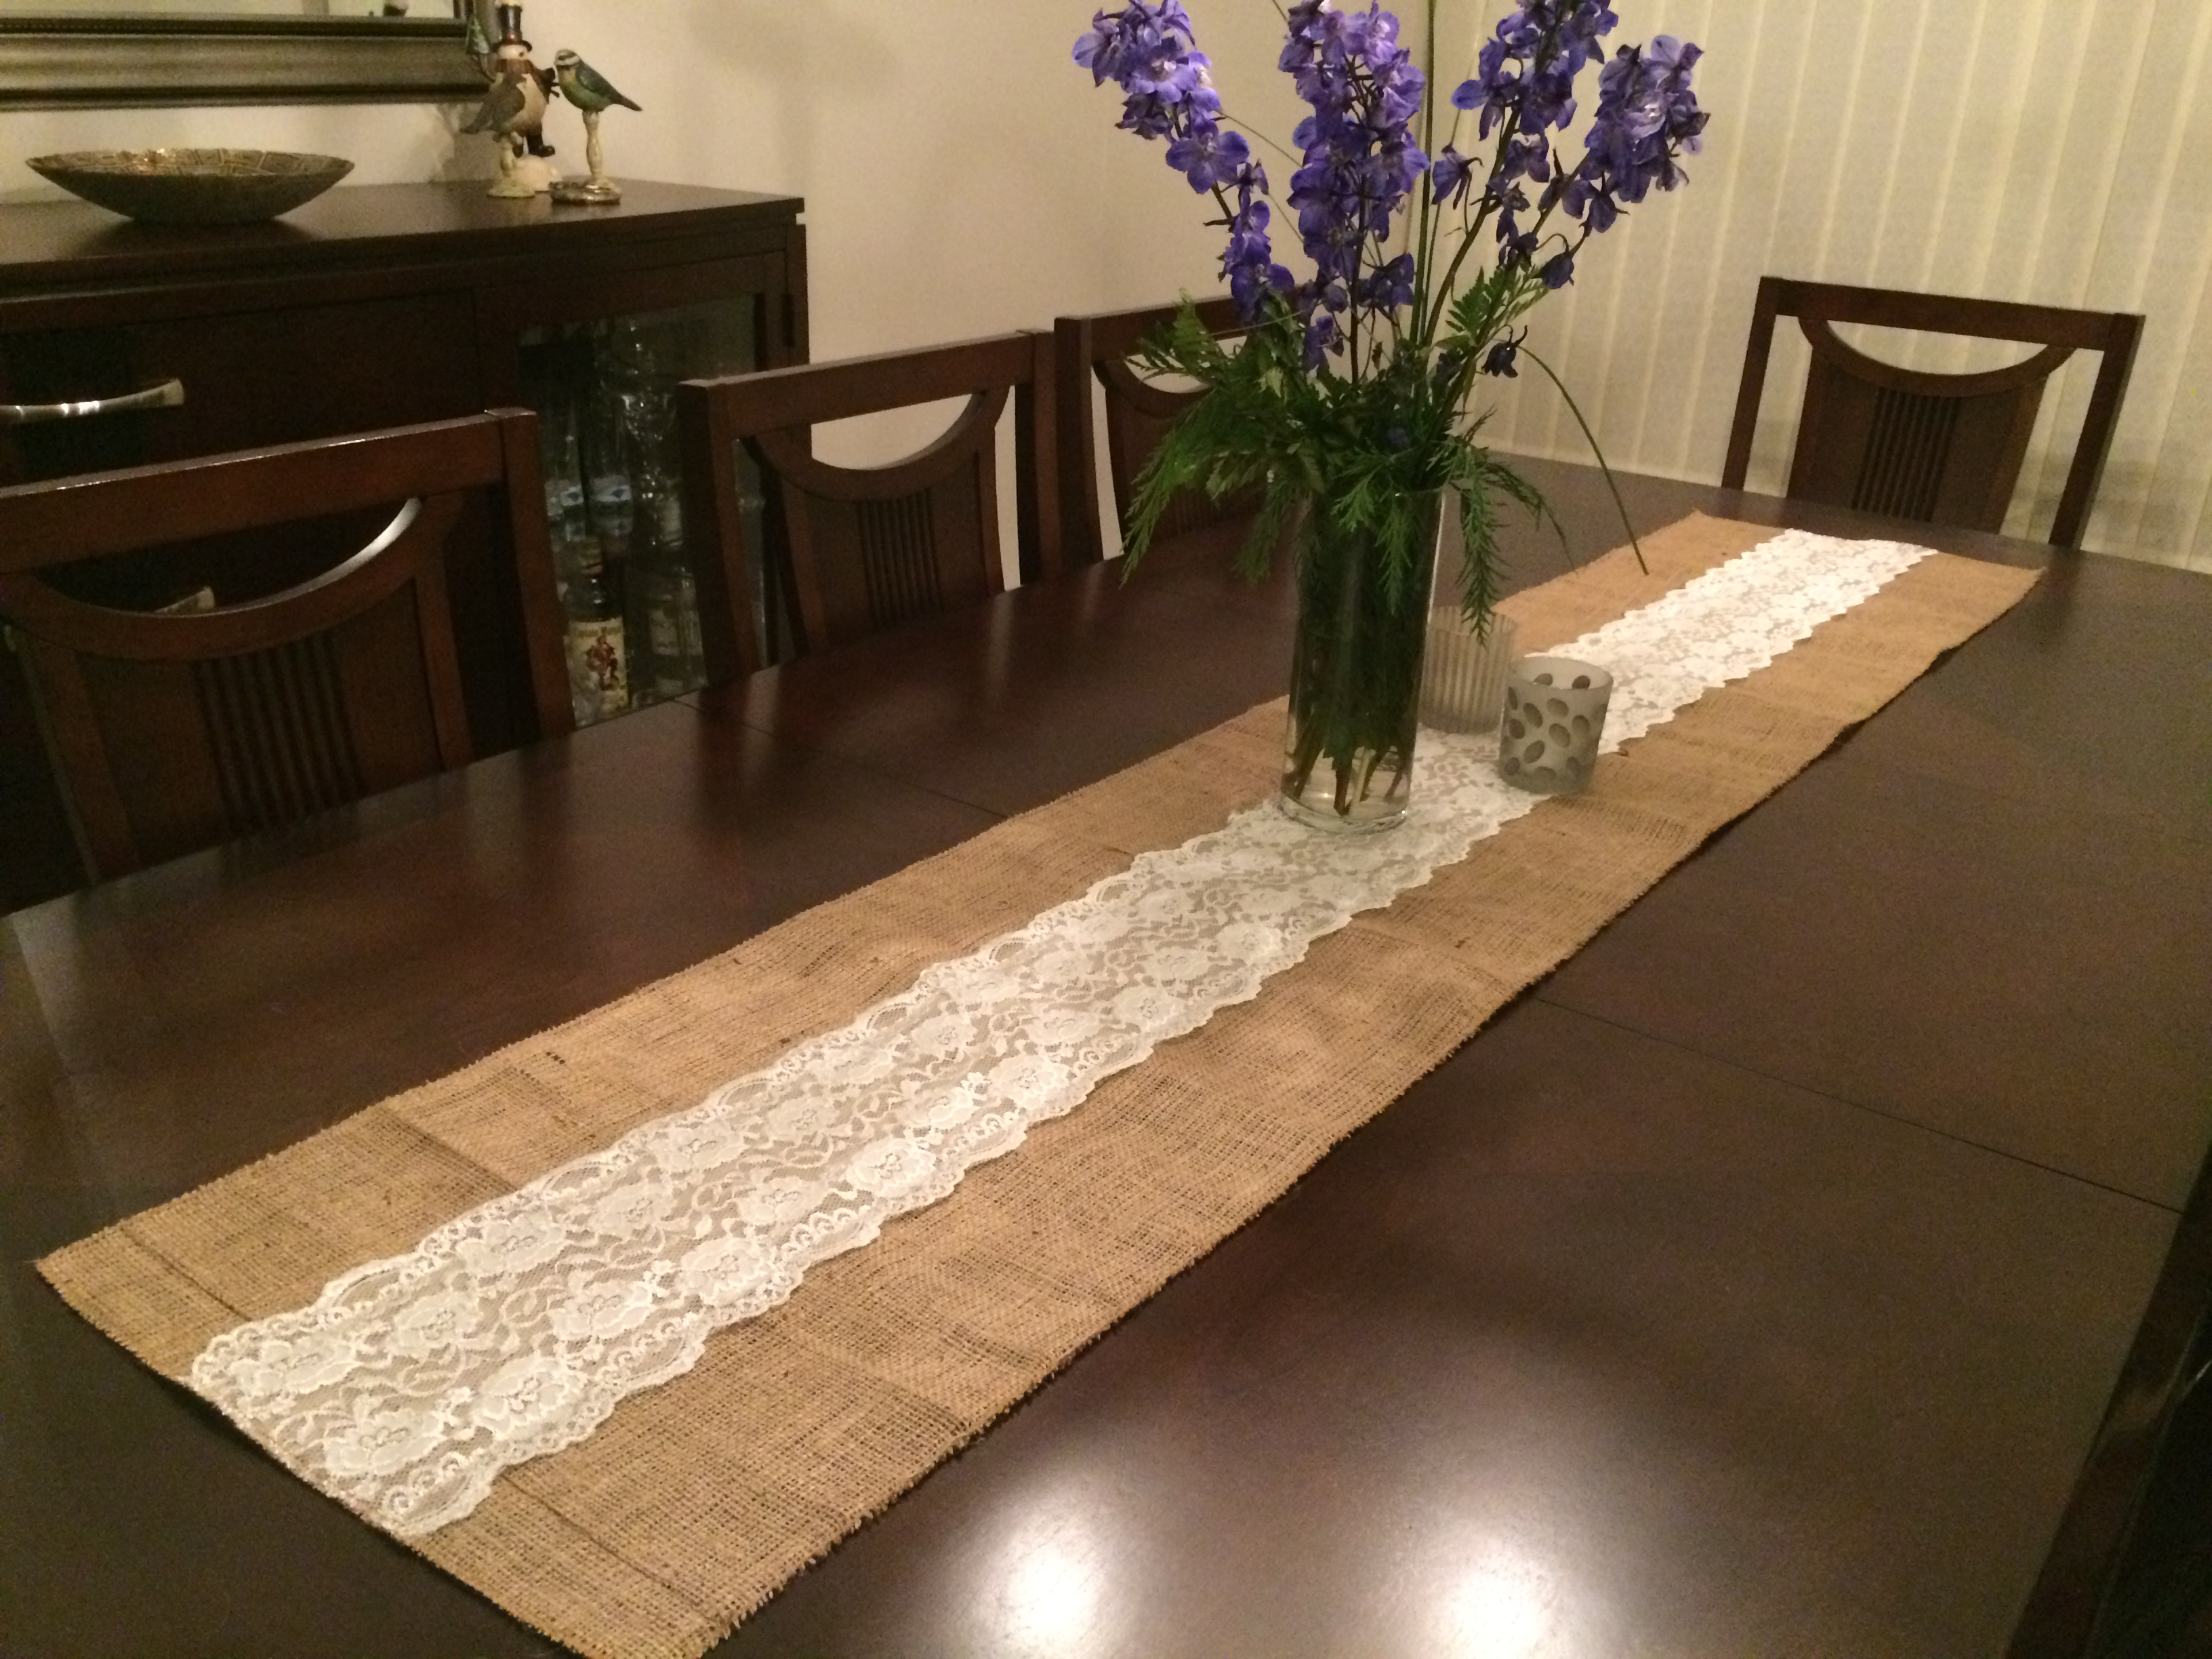 Burlap And Lace Table Runner 72 Inches Long Free Shipping Sold By Turkish Peshtemal Towels On Storenvy